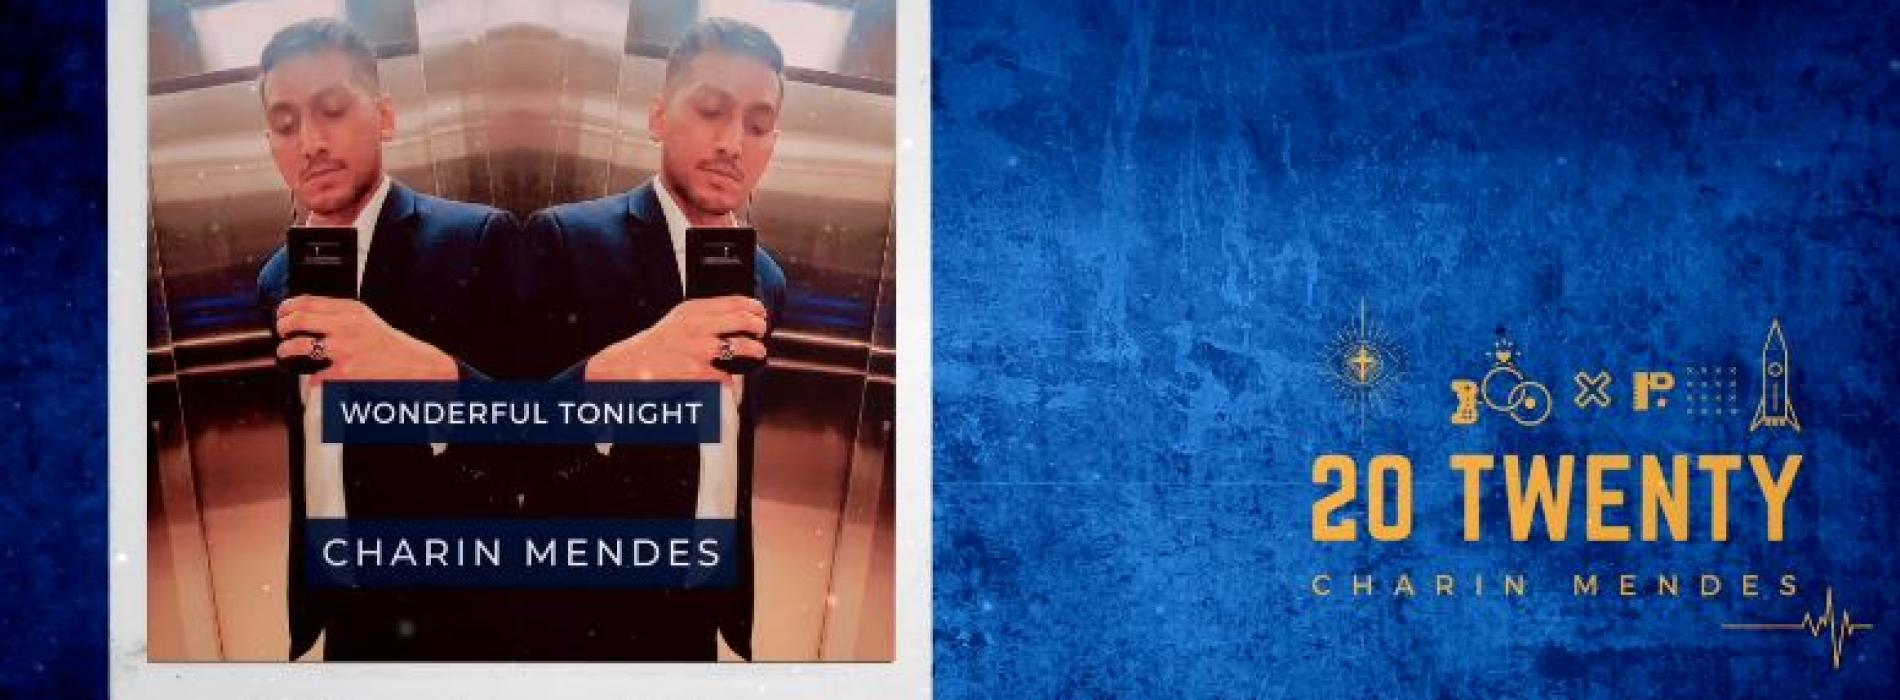 New Music : Charin Mendes – Wonderful Tonight (Cover)